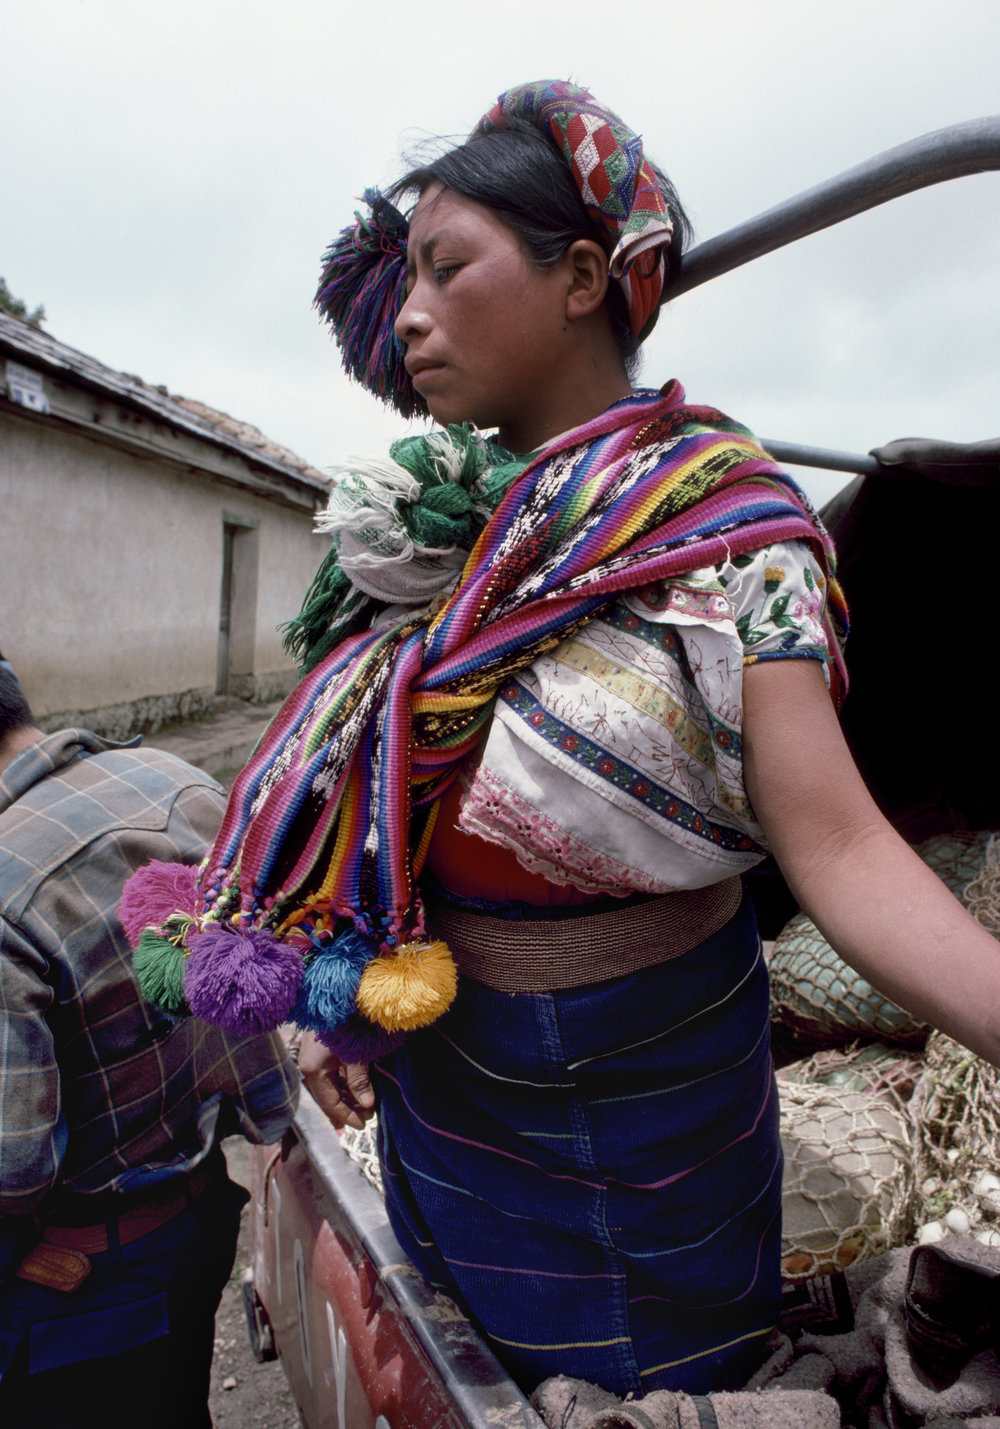 A Guatemalan woman stands in the back of a pick-up truck at a civil defense checkpoint in rural Huehuetenango, Guatemala on September 1, 1982.